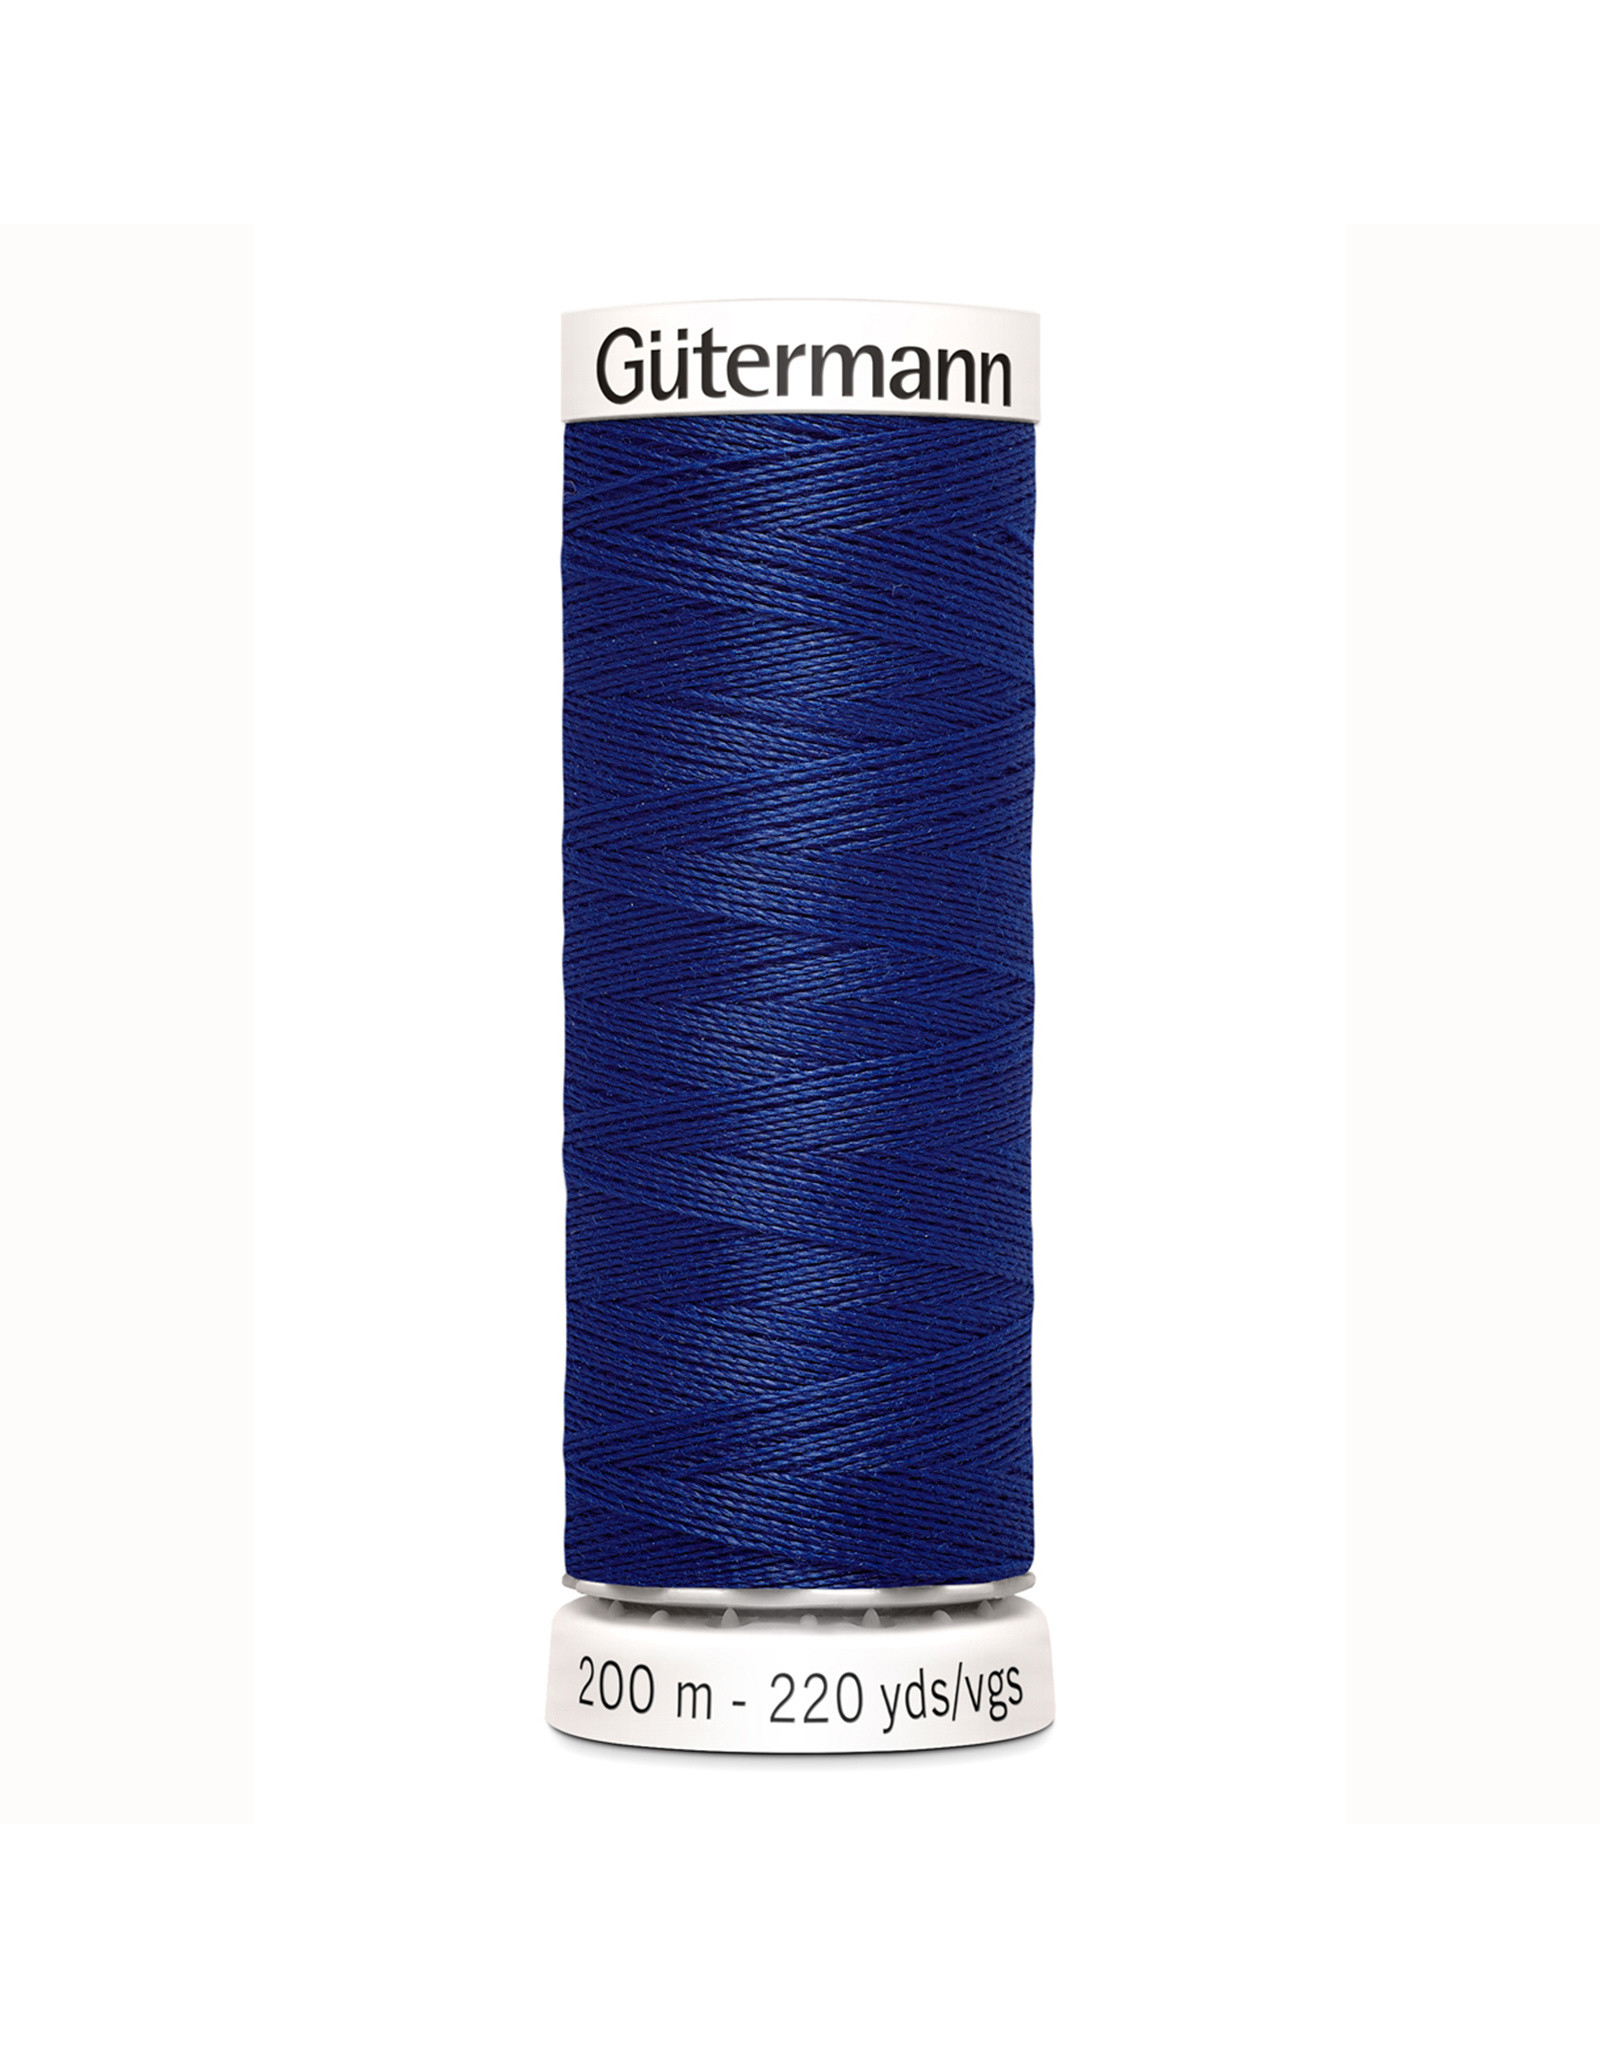 Gütermann Gütermann Sewing Thread 200 m - nr 232